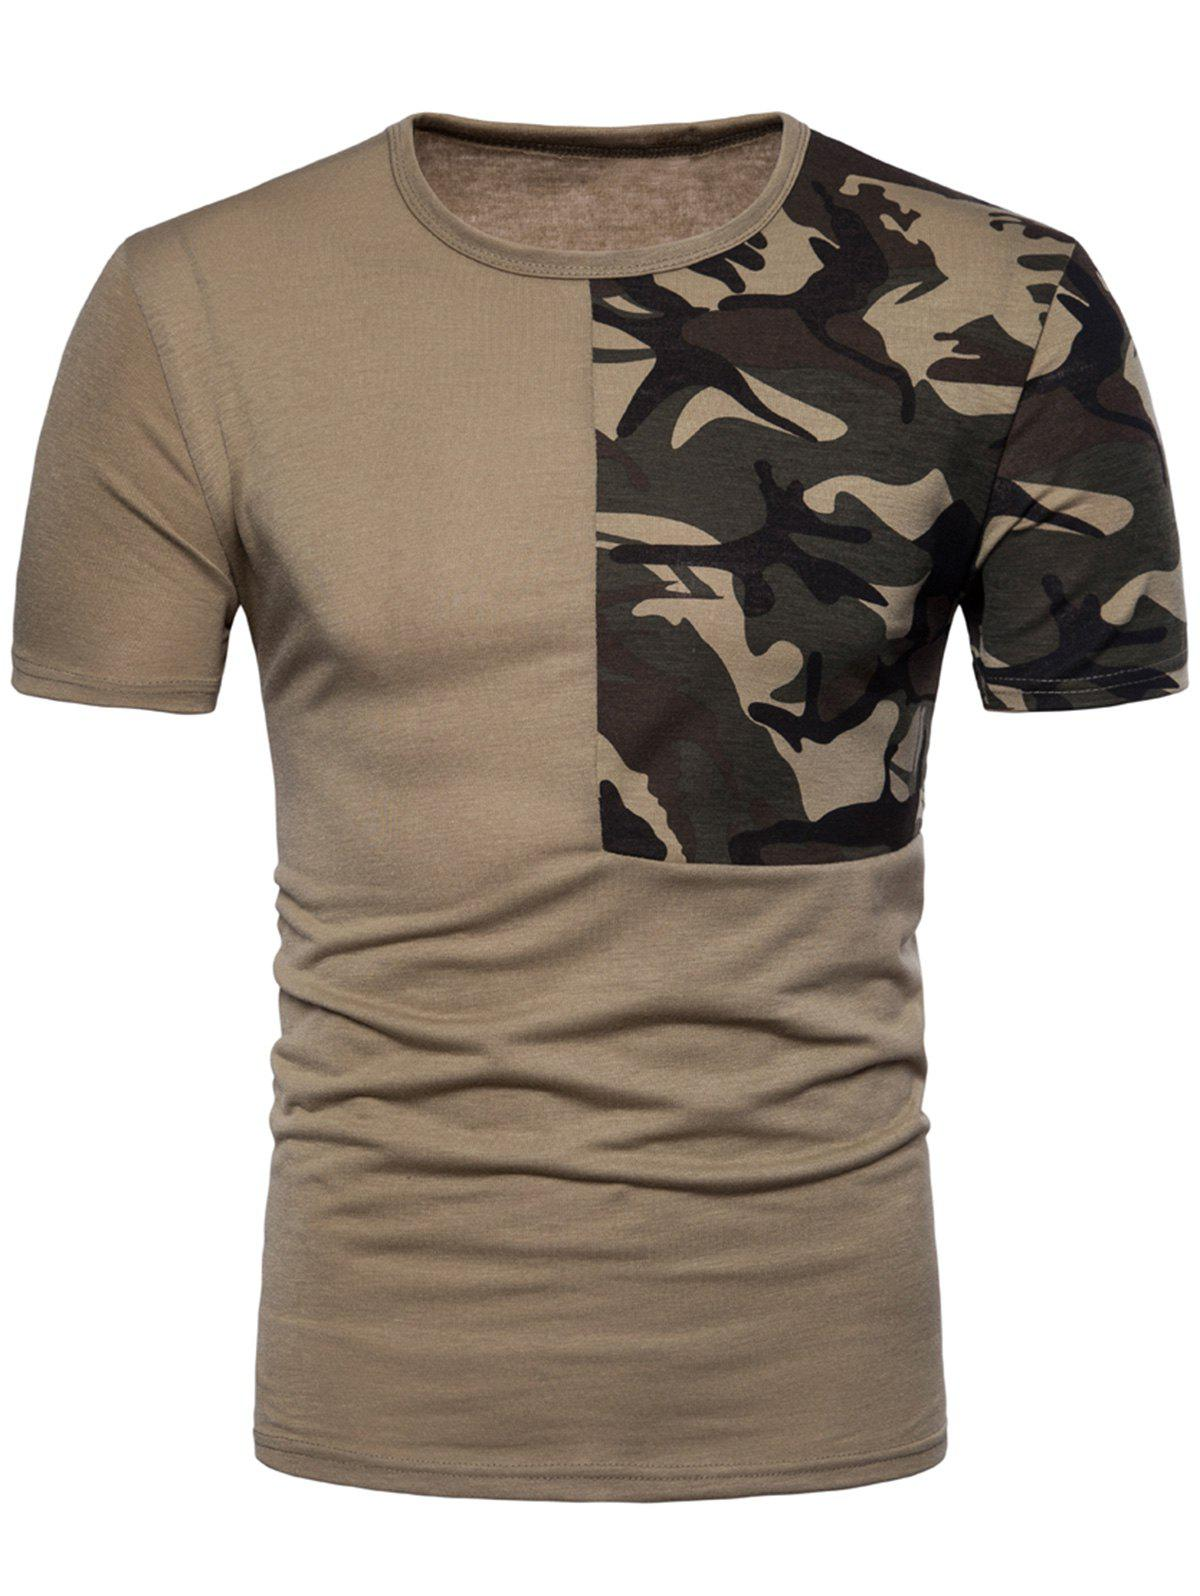 Camouflage Splicing Crew Neck T-shirt - DARK KHAKI 2XL